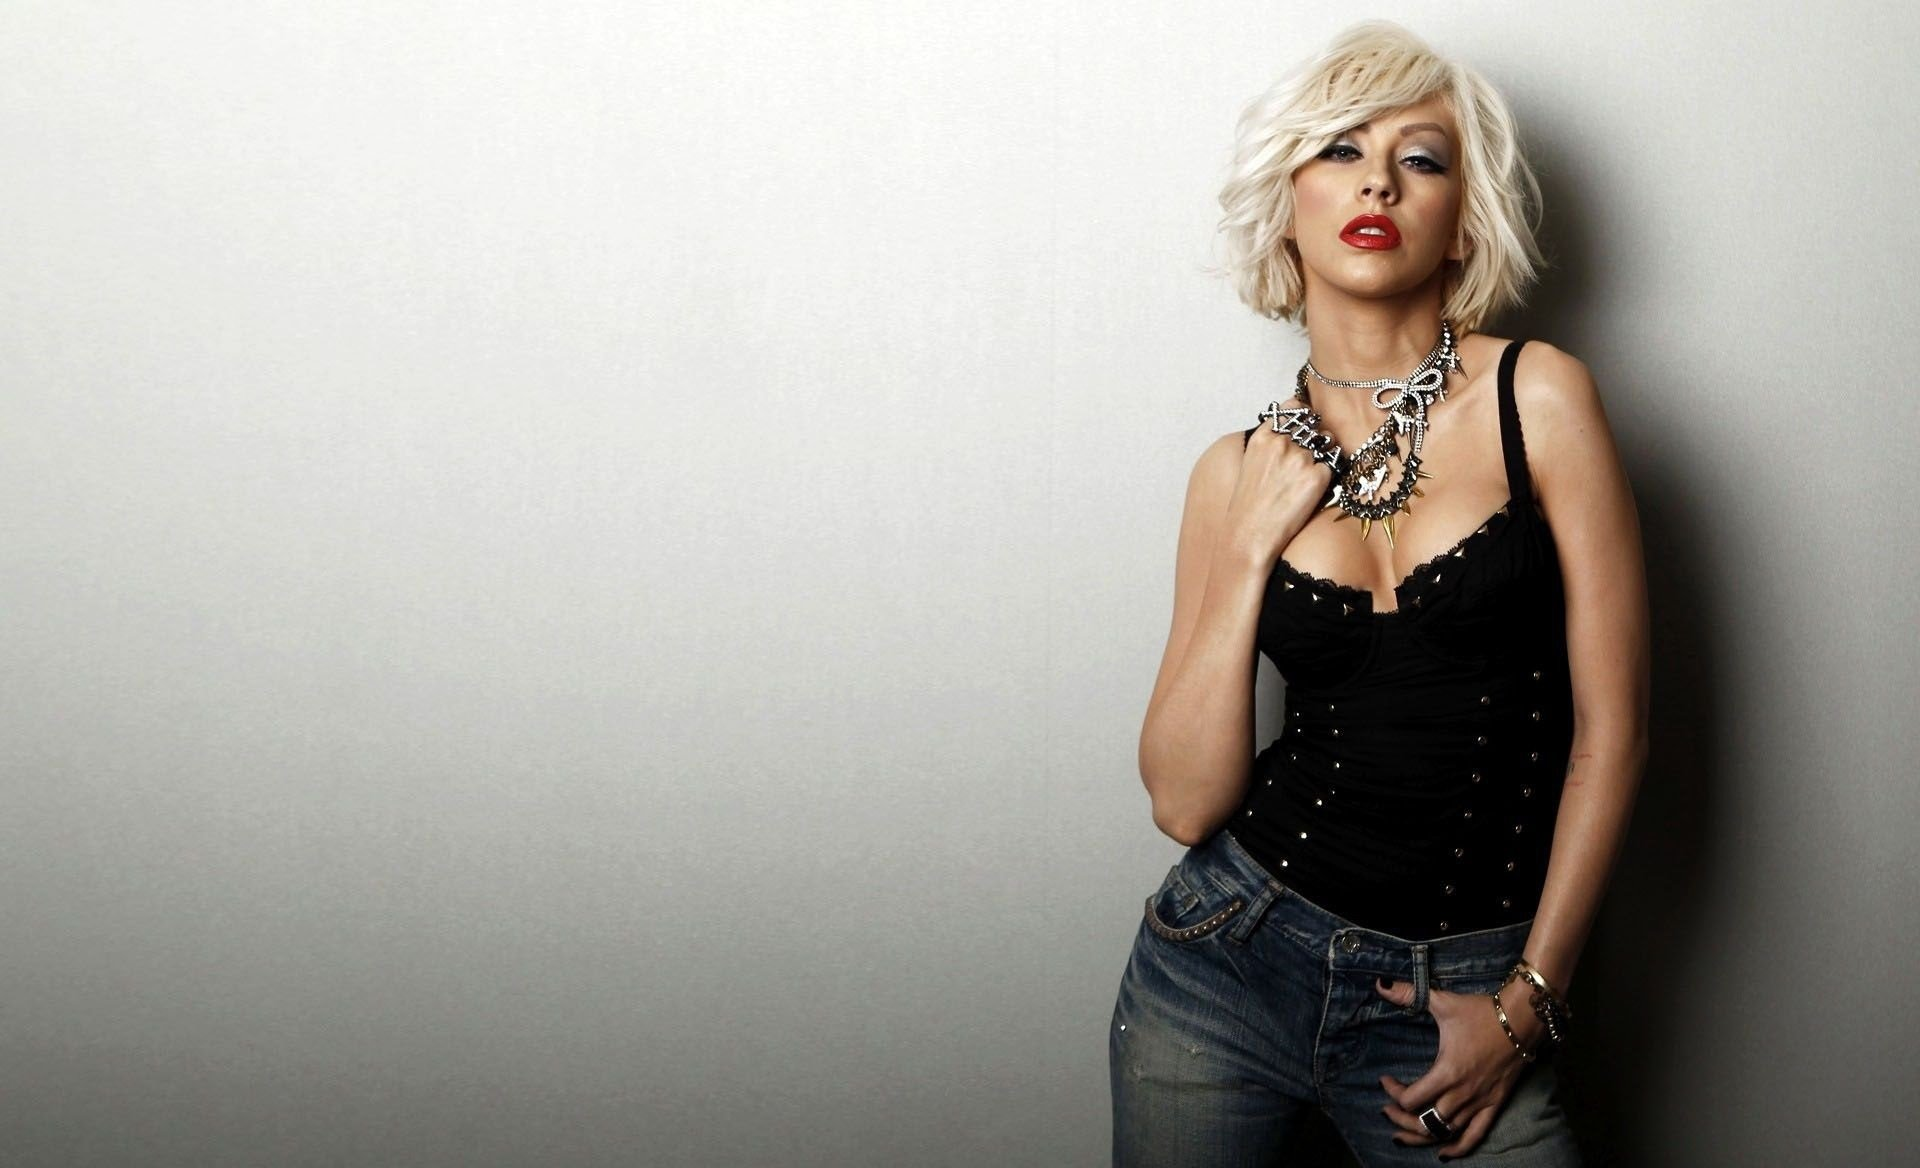 Christina Aguilera Wallpapers Images Photos Pictures Backgrounds 1920x1168